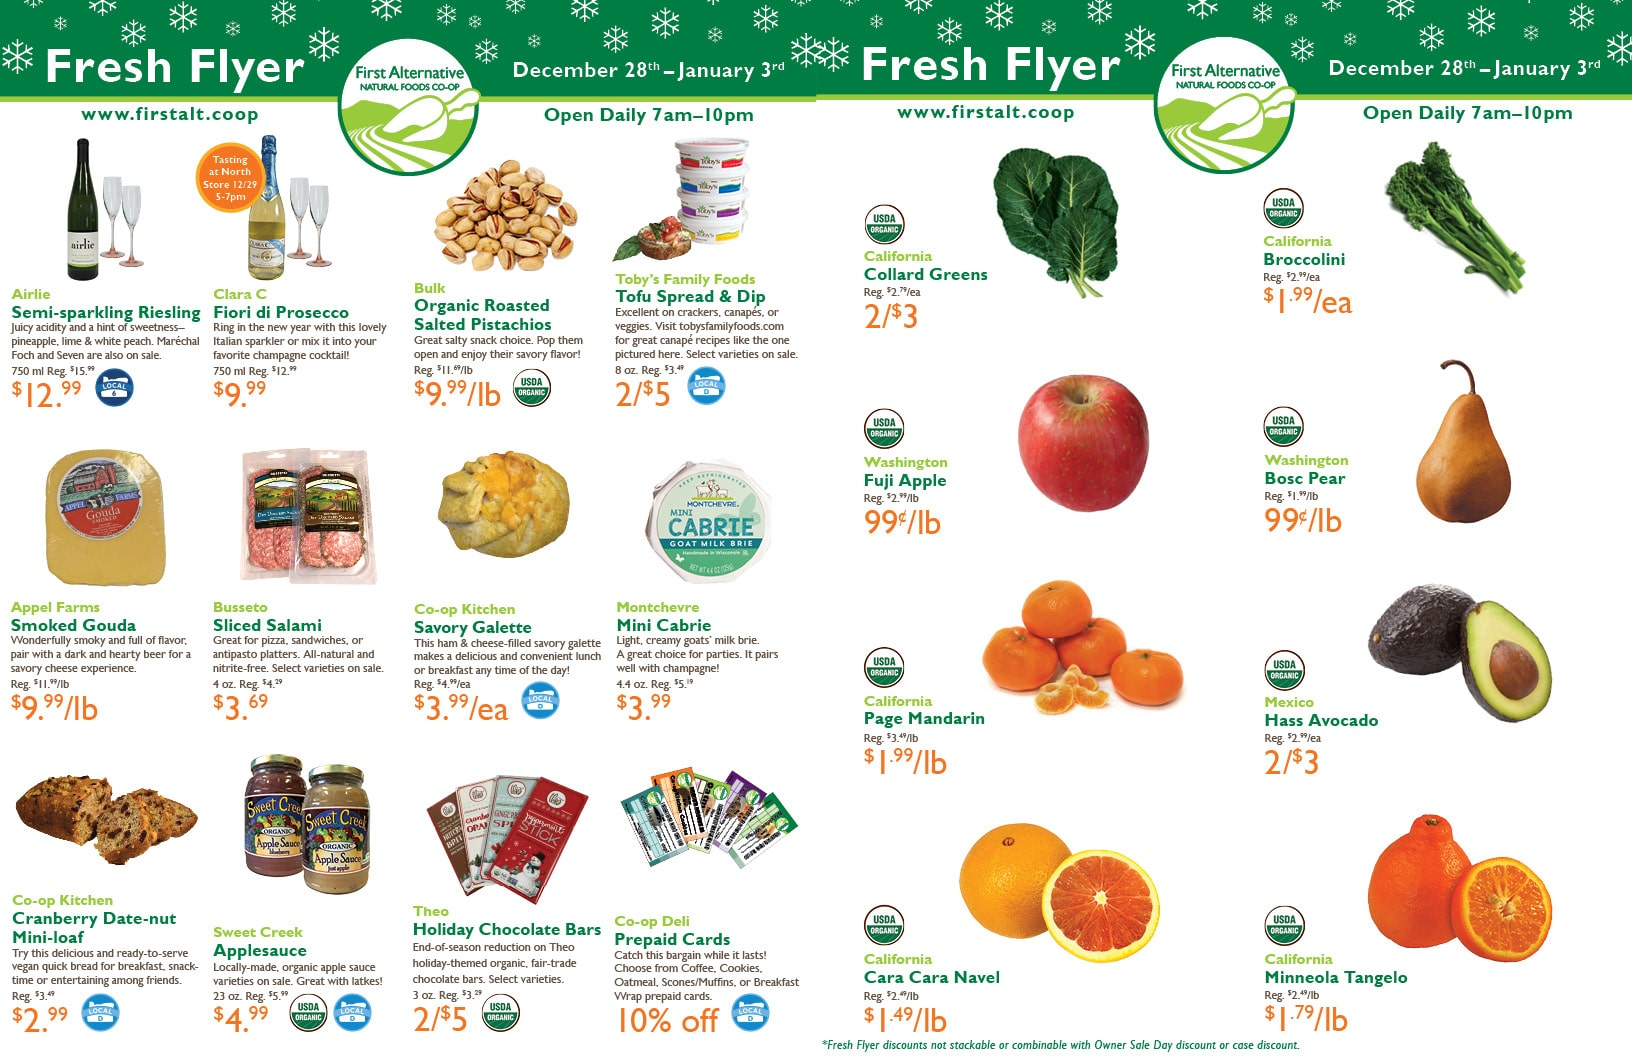 First Alternative Co-op Fresh Flyer Dec. 28-Jan. 3